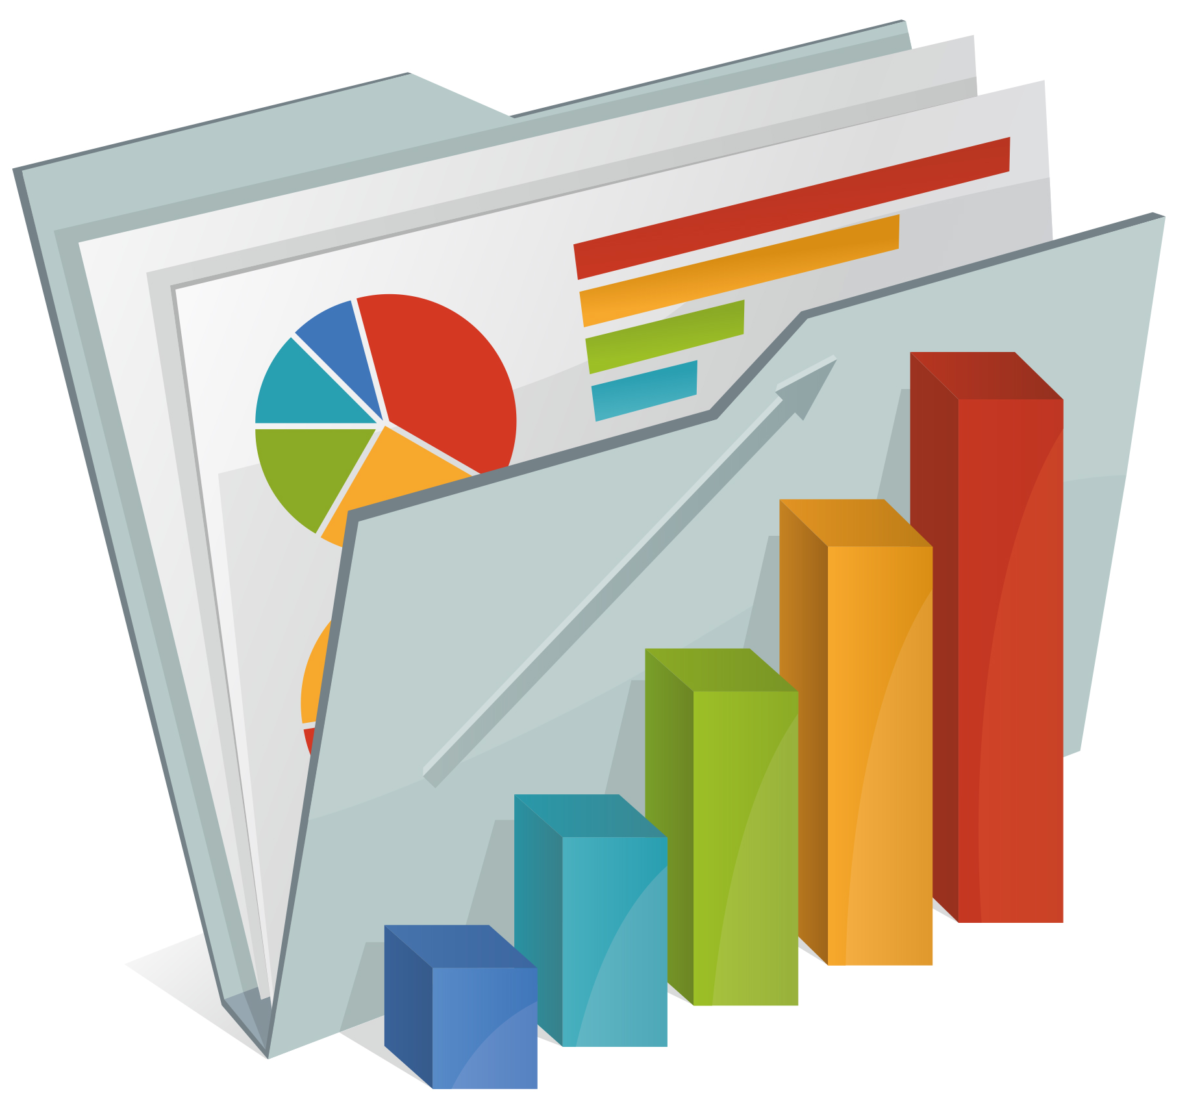 2015-2016 POS Expenditure and Demographic Data Report